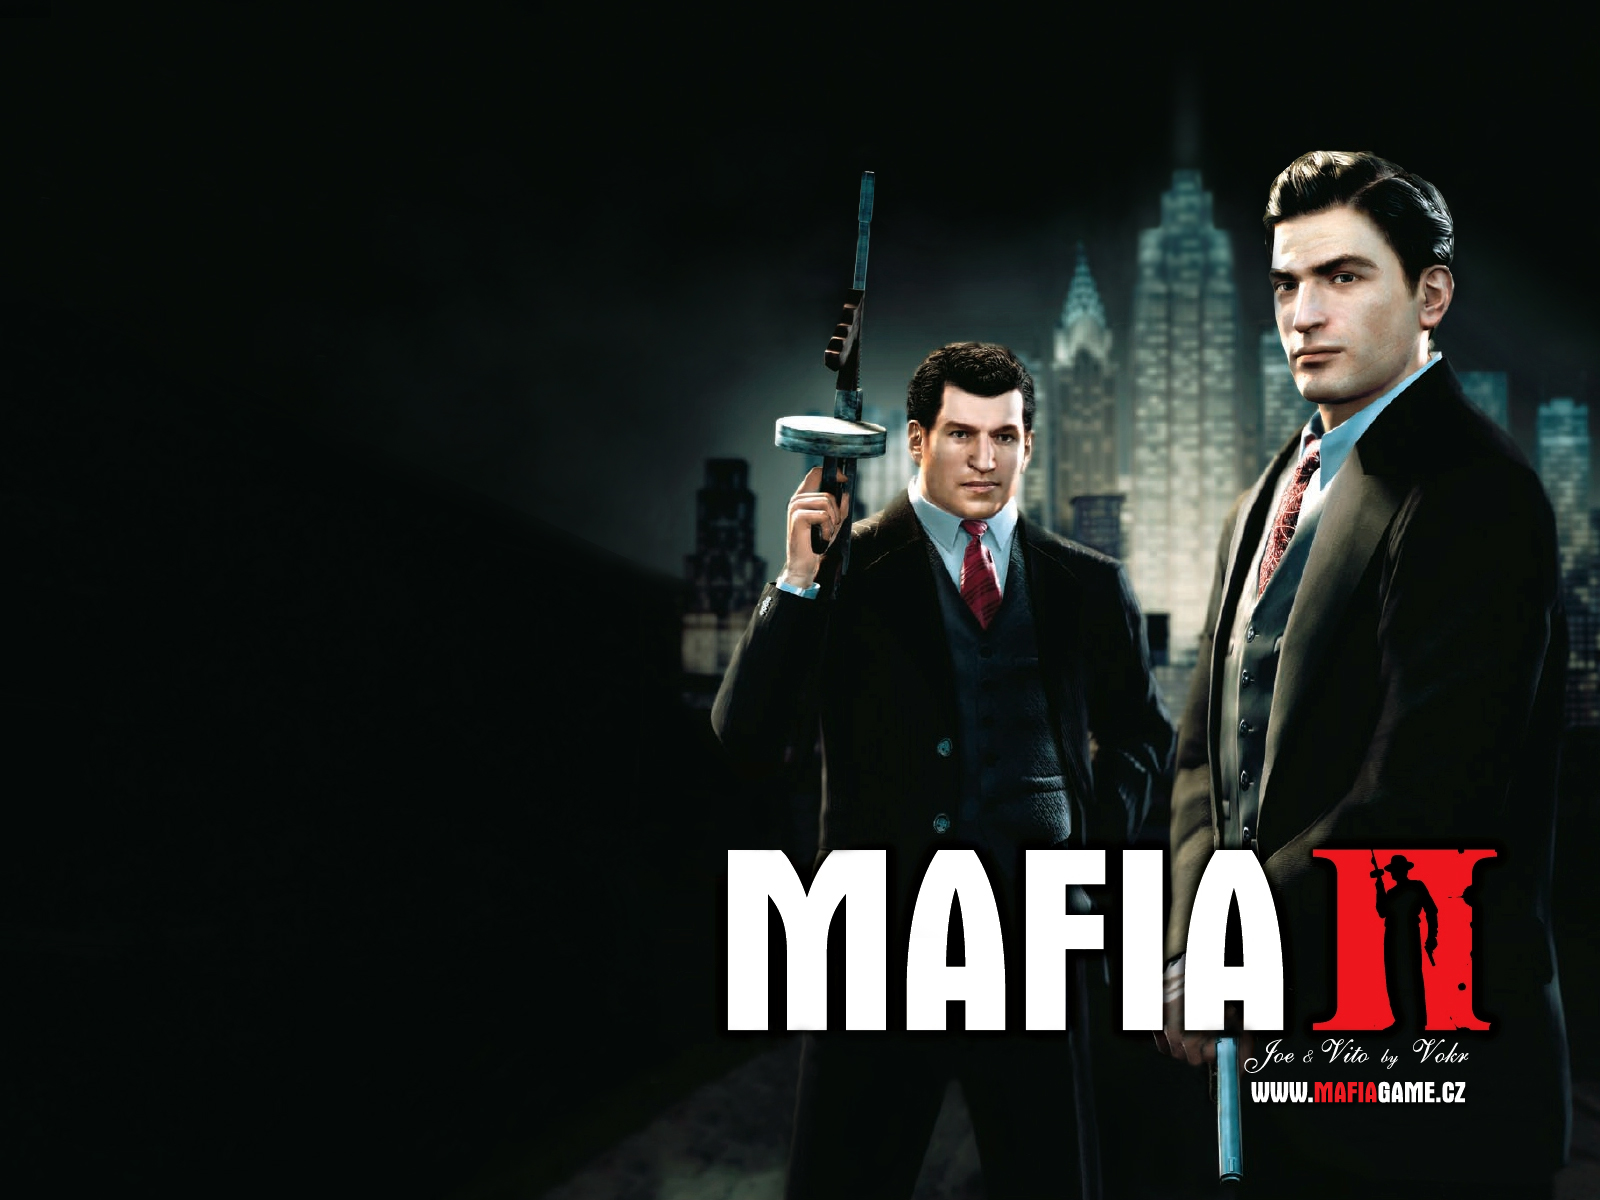 Mafia Wallpapers Image Picture and Photo 1600x1200